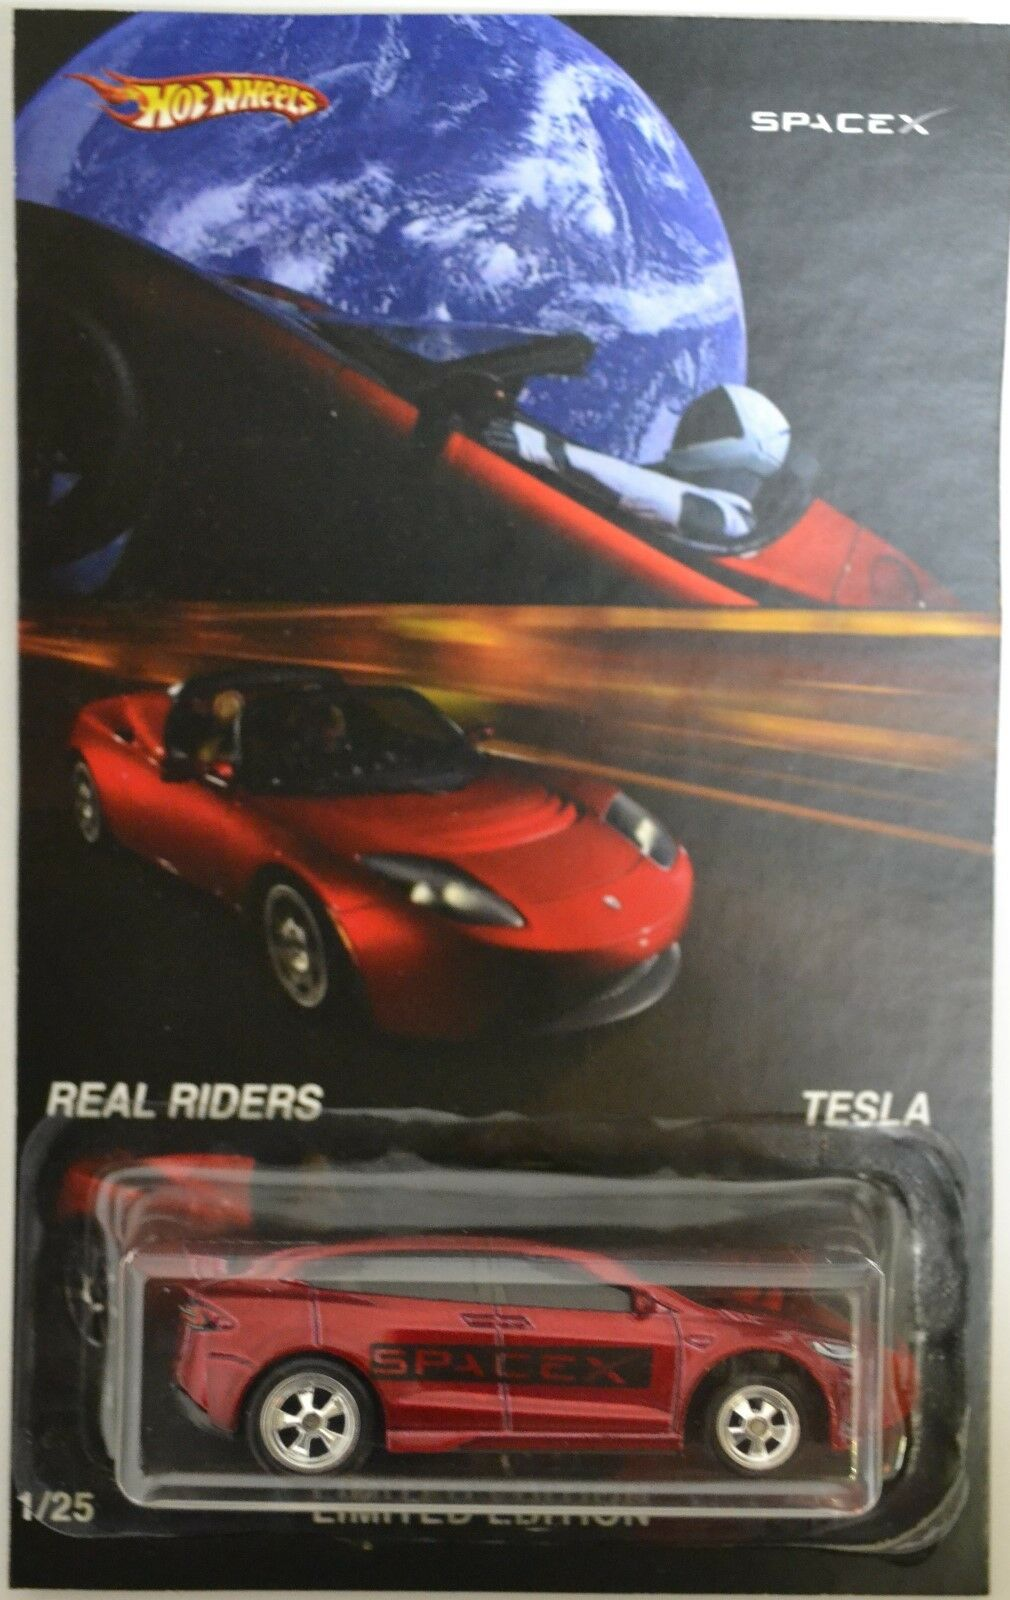 Tesla Modell X SpaceX Series Egen HW w  Real Riders LE